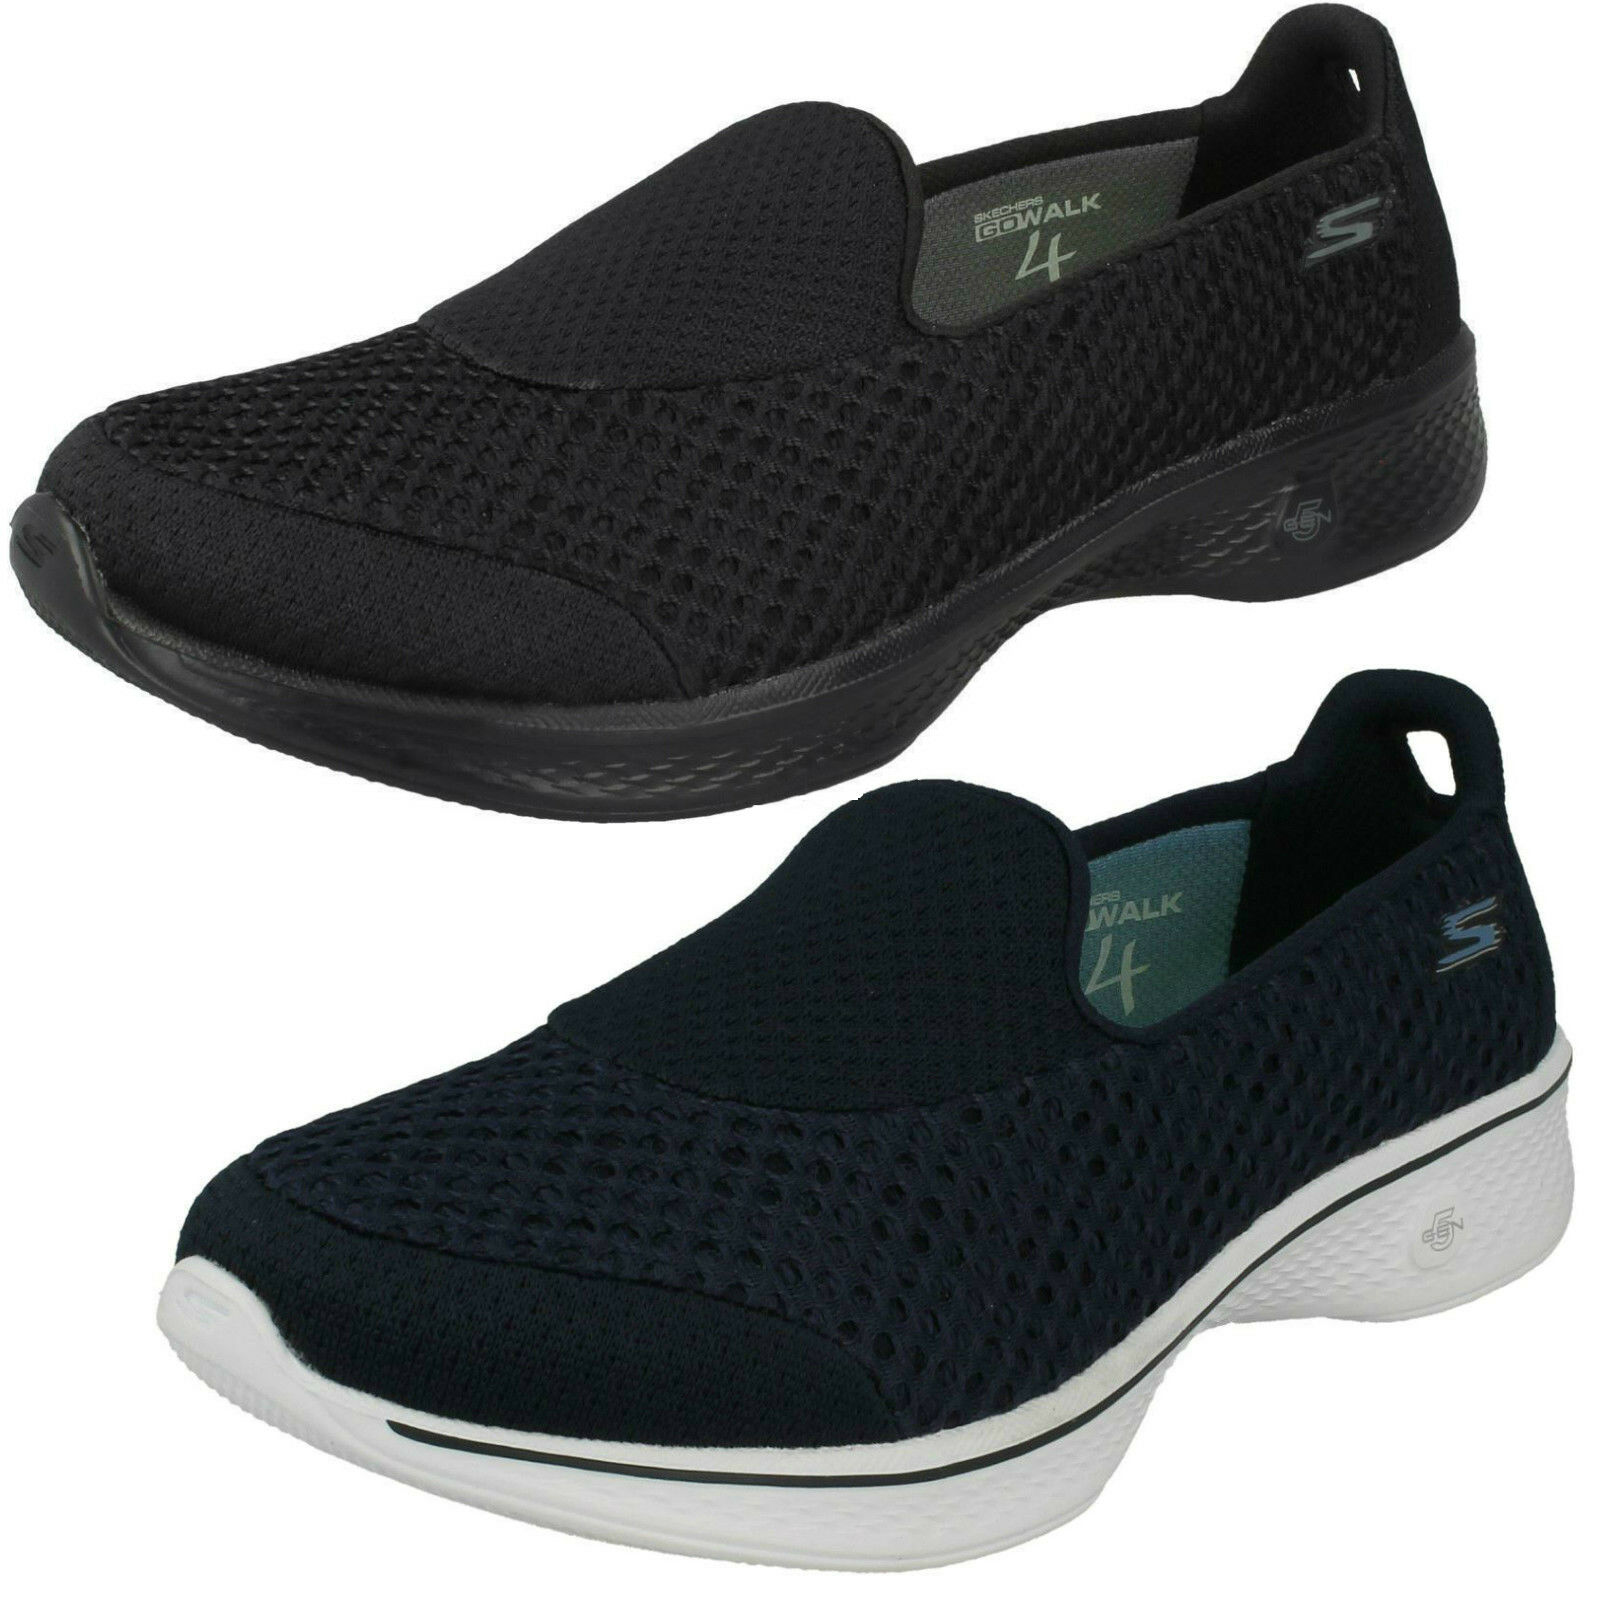 Ladies Skechers 14145 Go Walk 4 - Kindle Black Or Navy Slip On Trainers